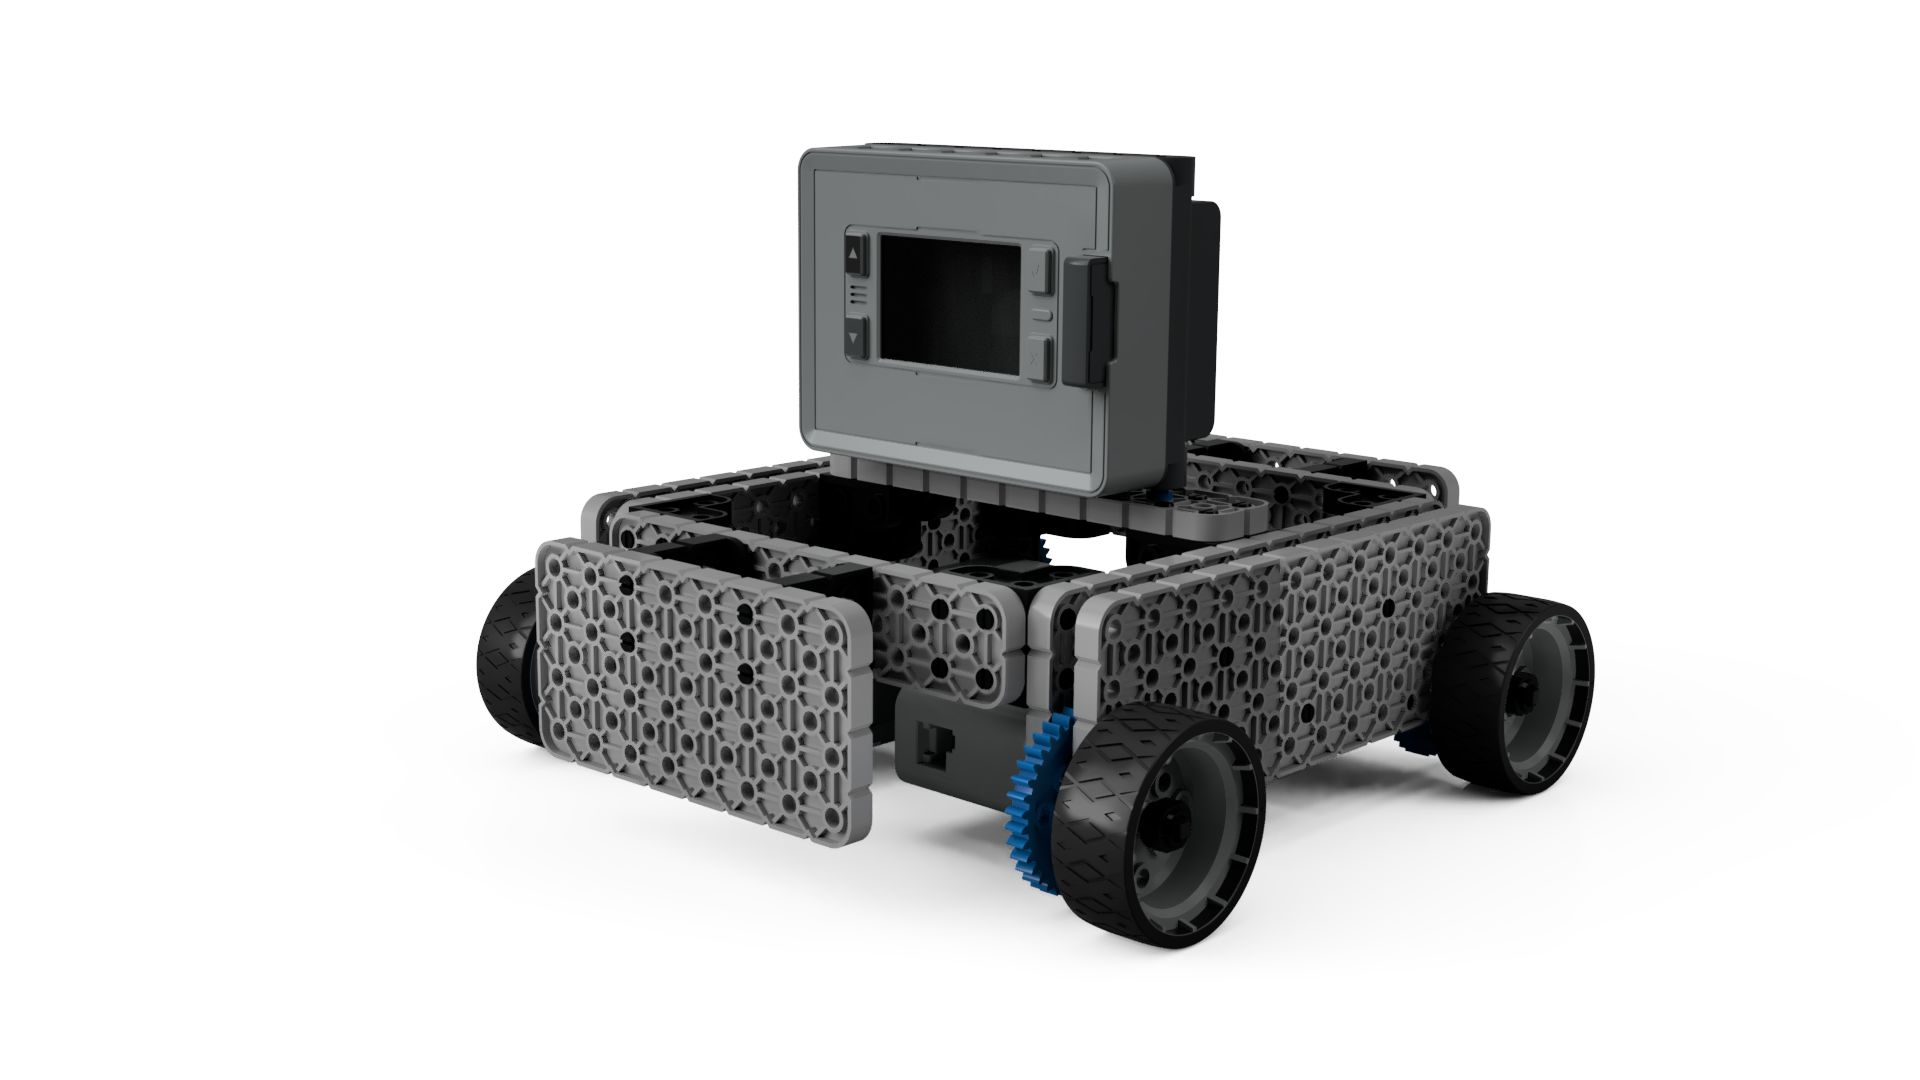 The-power-turtle-drivetrain---vex-iq-robotics-2019-may-25-06-09-56pm-000-customizedview29102332528-png-3500-3500